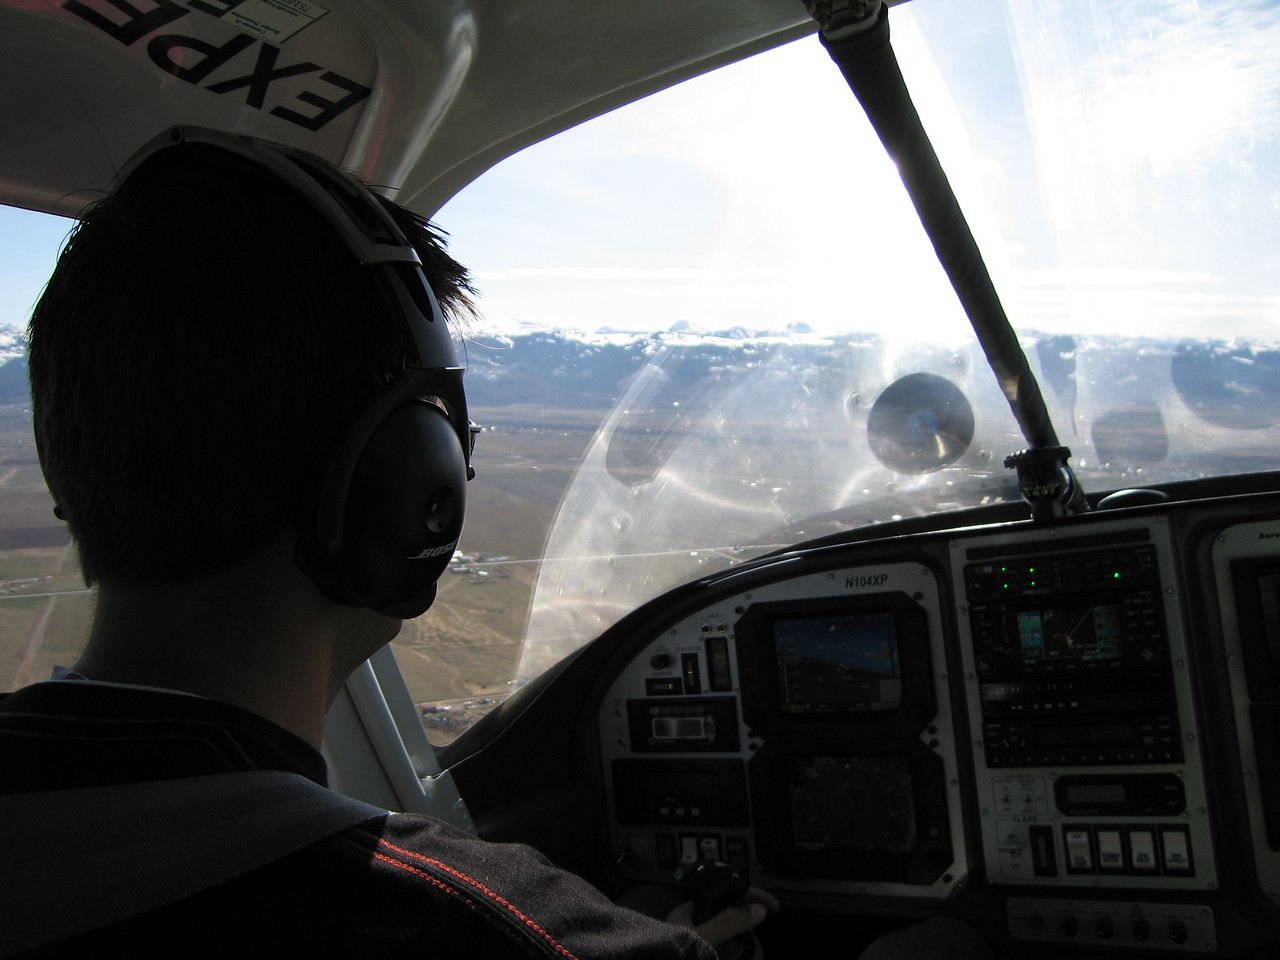 Approach for landing